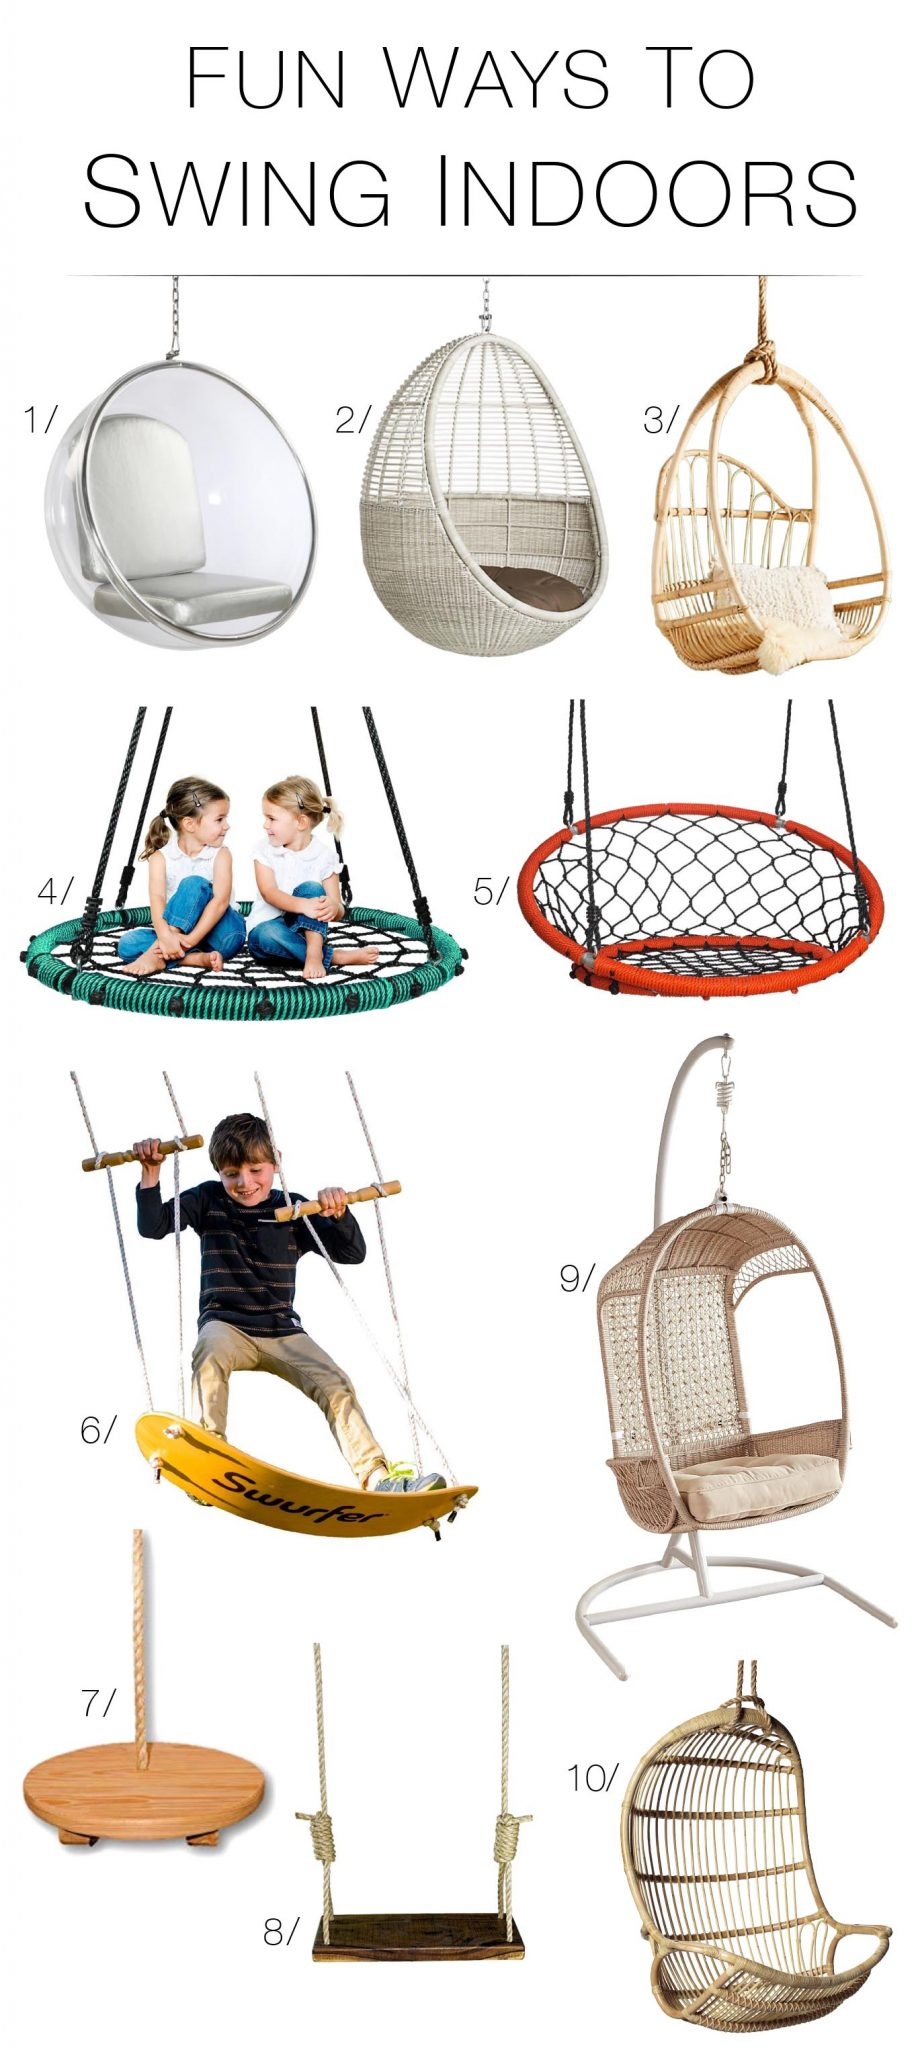 Hanging chair swings! We have 10 — for bedrooms, playrooms, patios & yards b/c, city living requires some creative liberties & what's more fun than swinging?